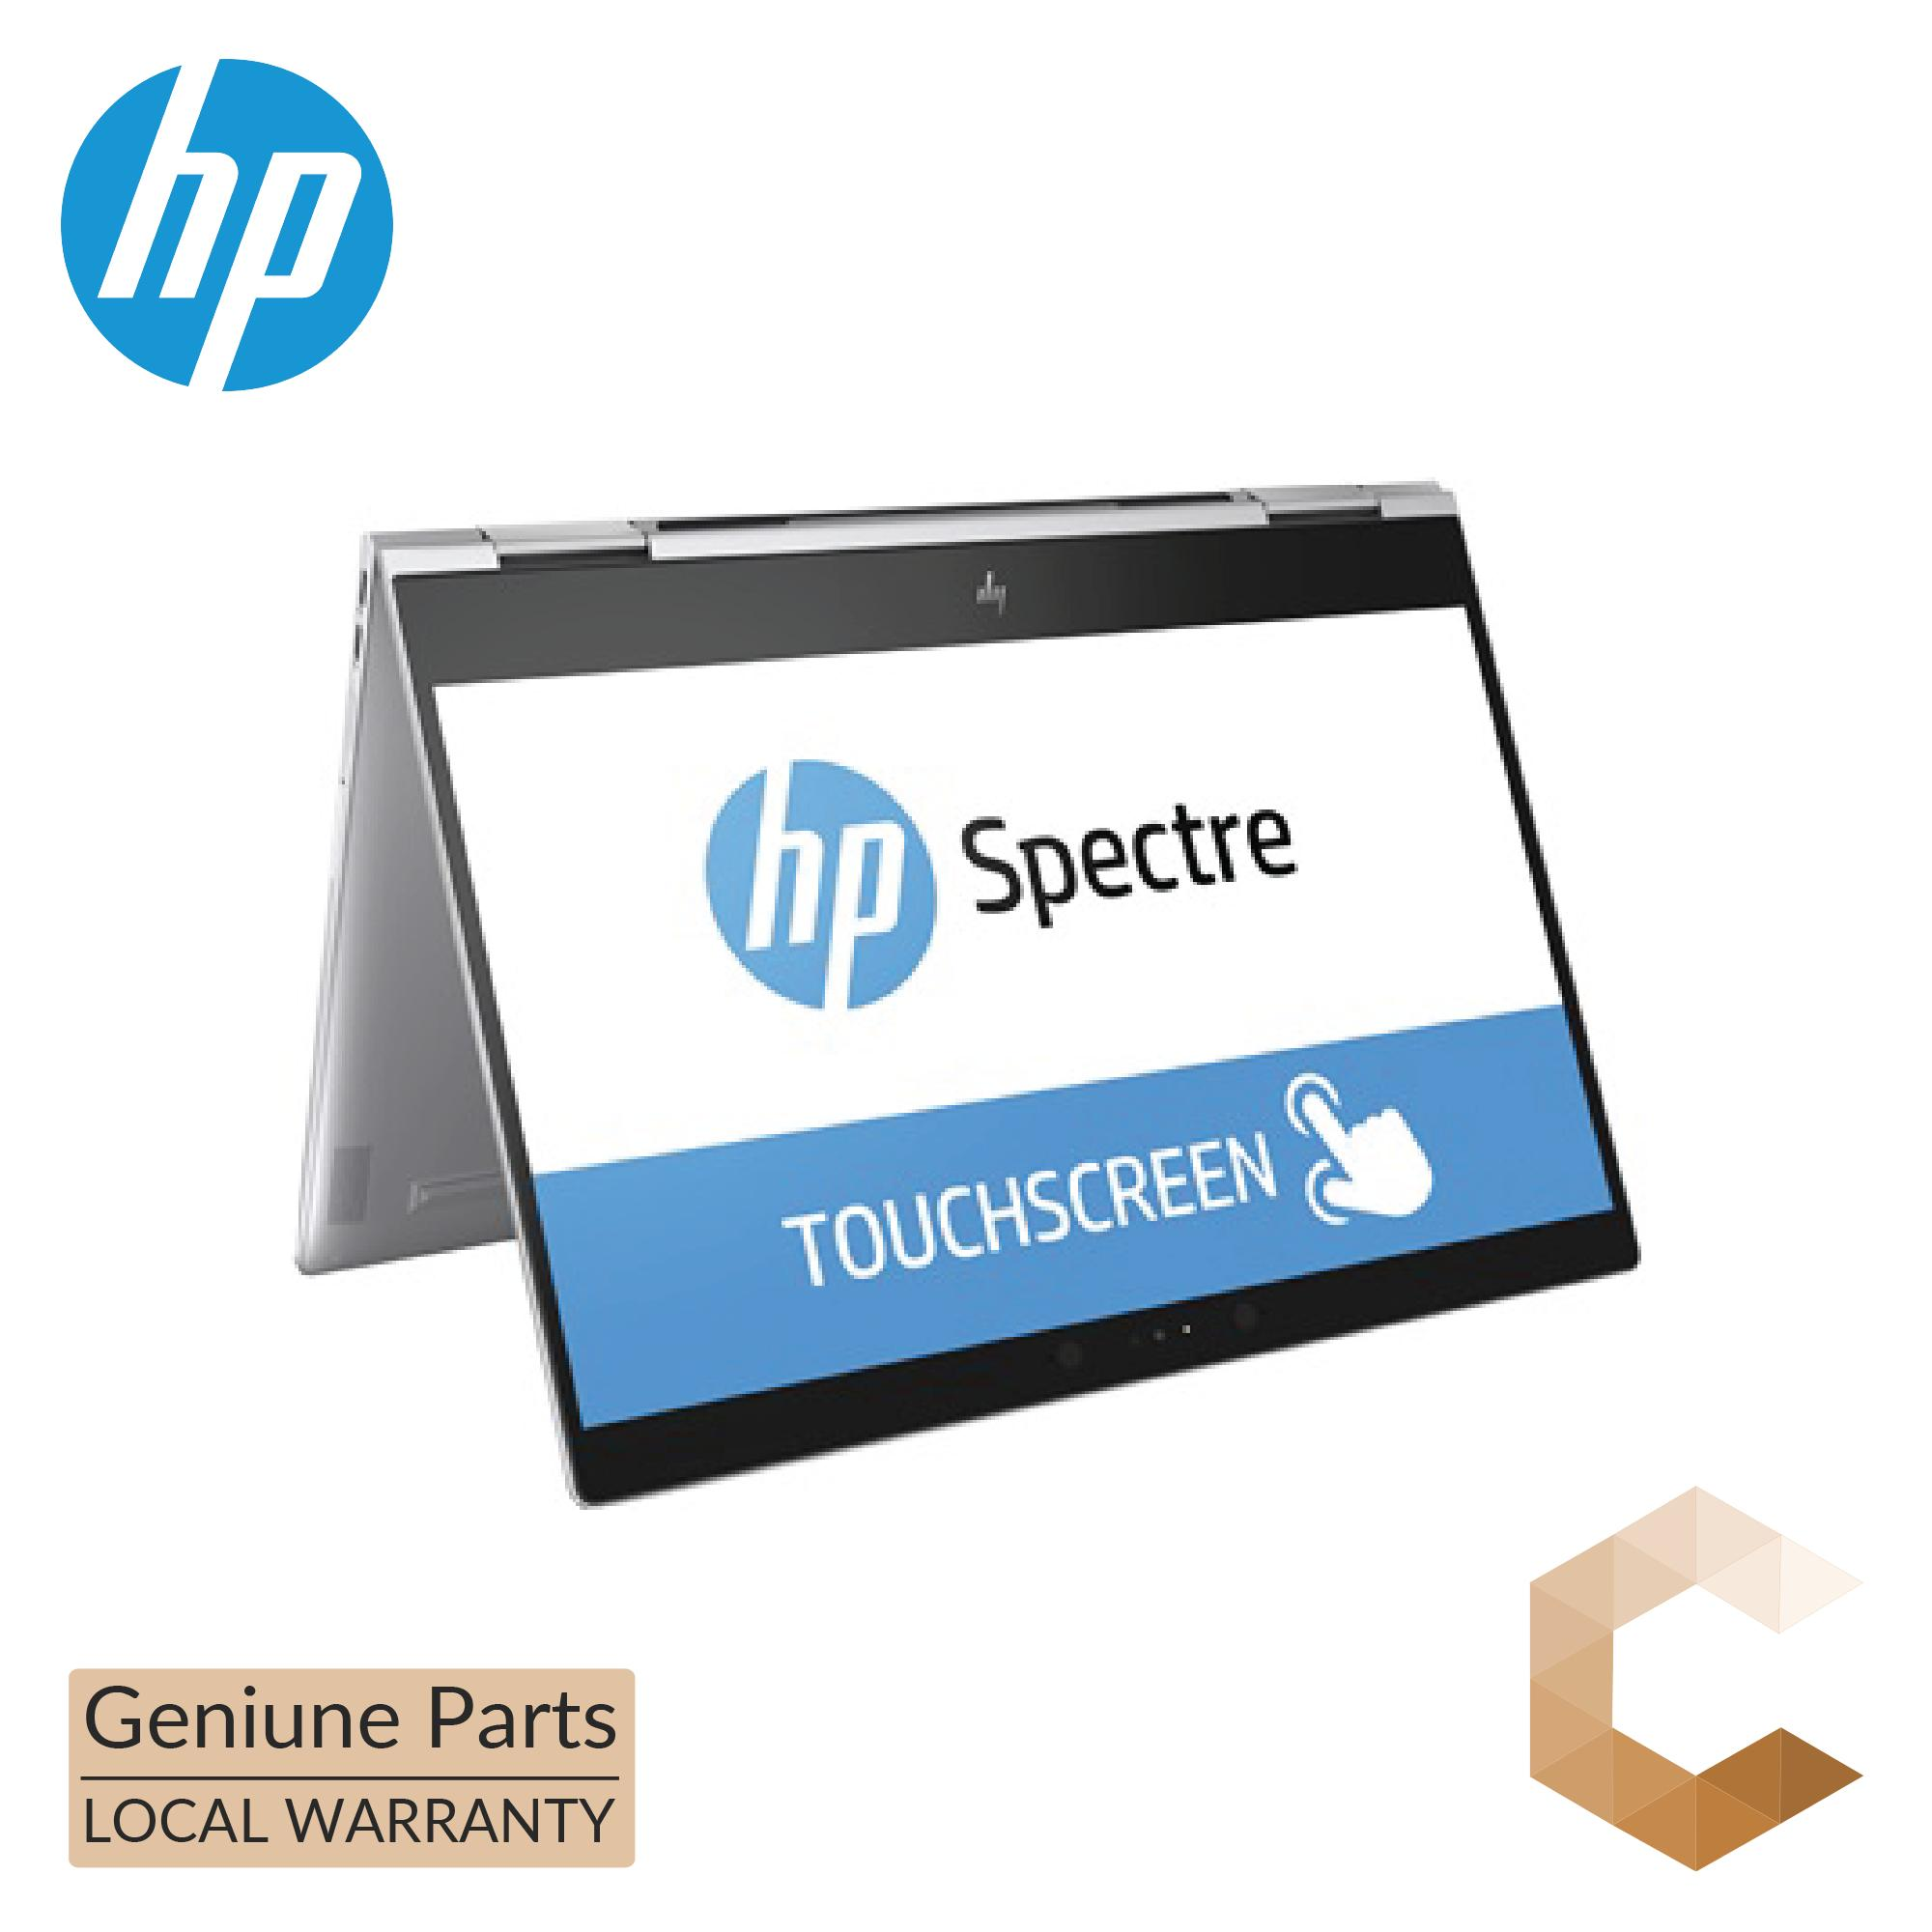 HP Spectre x360 Convertible 13-ae079TU (3BE48PA)